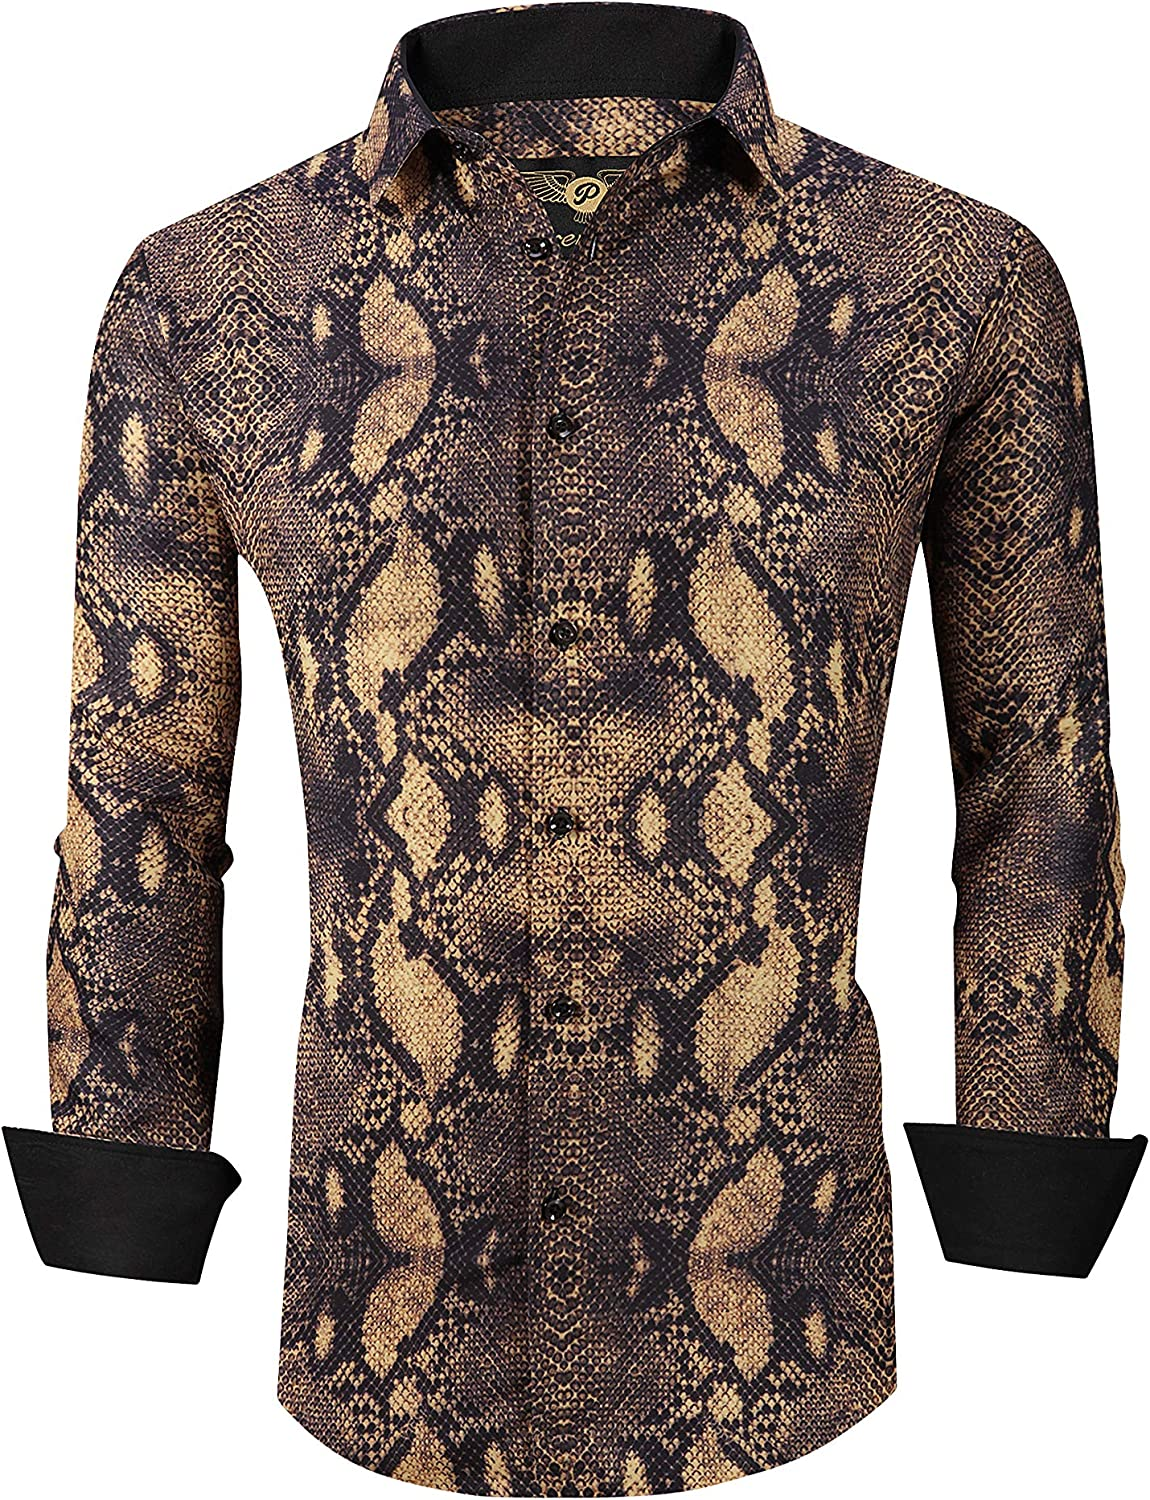 Mens Popular brand in the world New Orleans Mall Premiere Long Sleeve Button Down Designer Shirt Anima Dress